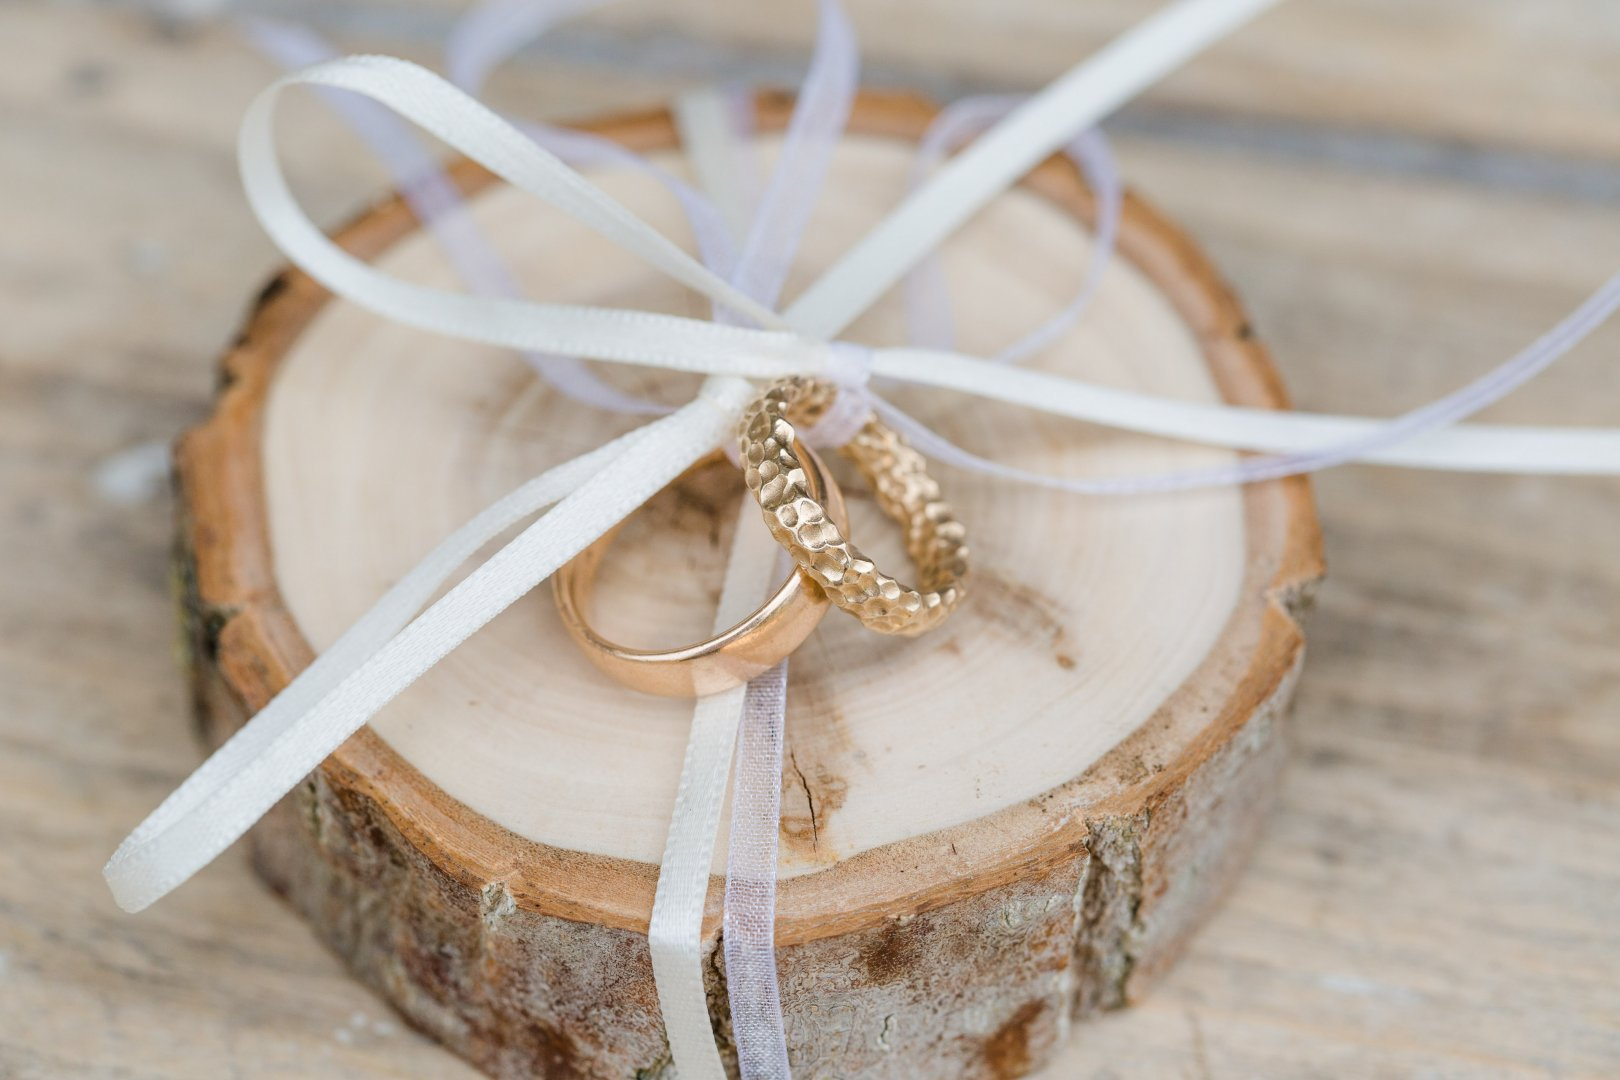 Wedding ceremony supply Party favor Wedding favors Fashion accessory Jewellery Gift wrapping Wedding ring cushion Hair accessory Engagement ring Wedding ring Present